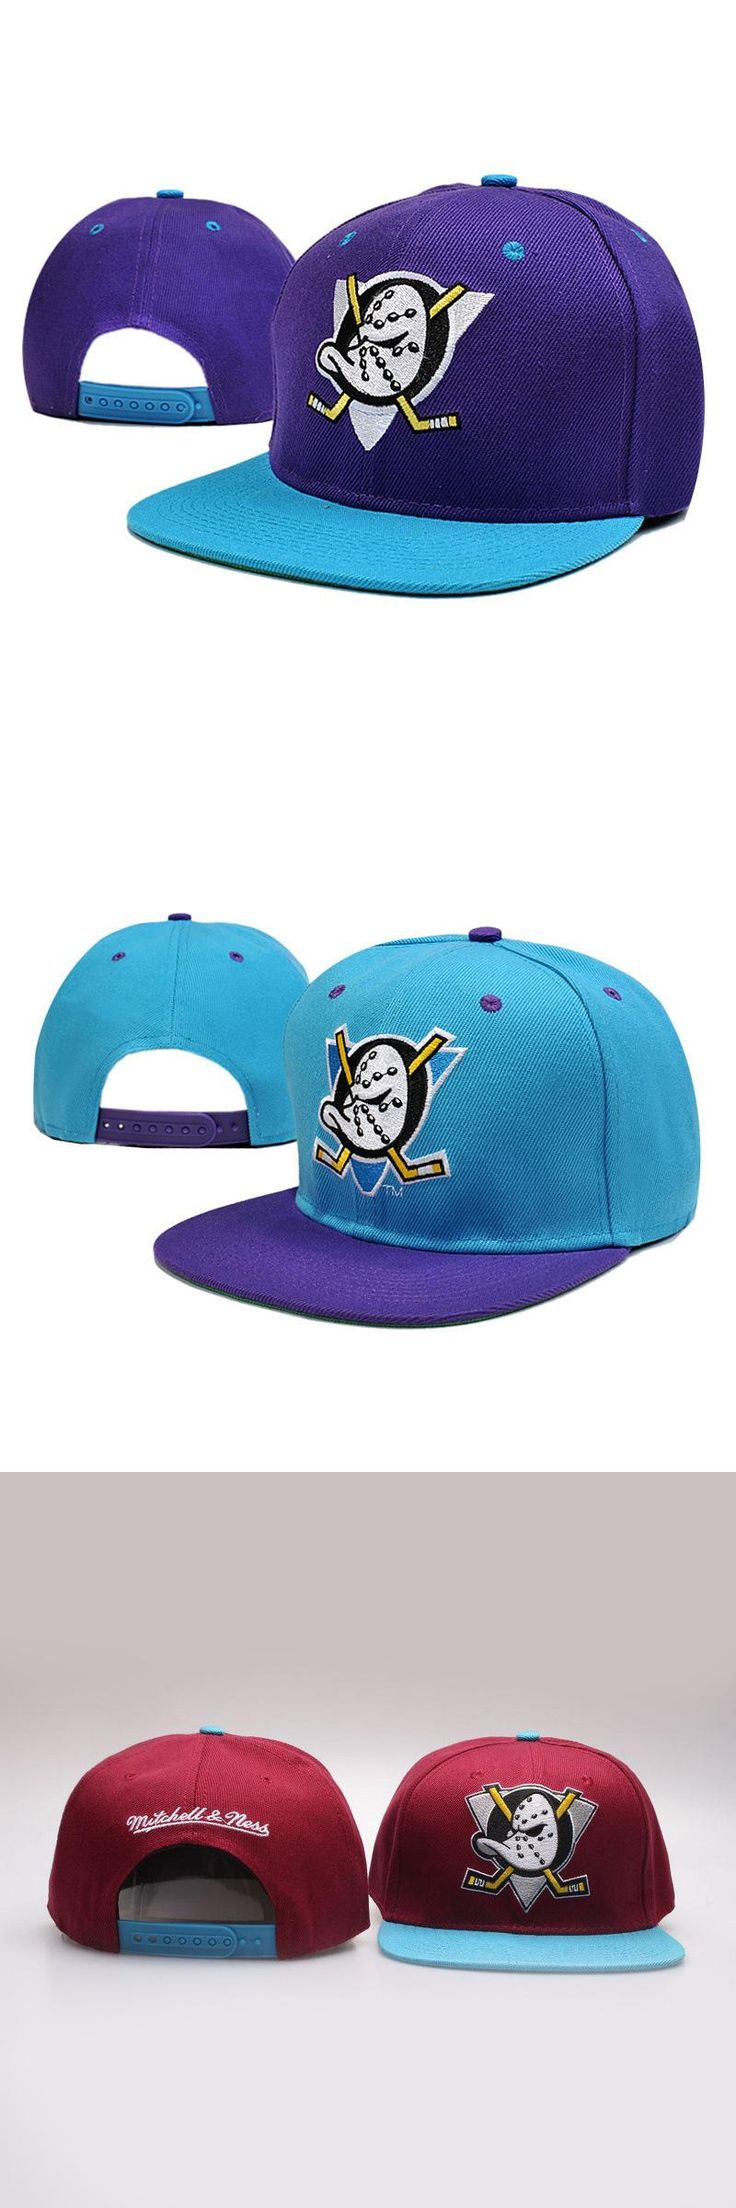 [Visit to Buy] 2017 hot Nhl Pittsburgh Penguins baseball bones Snapback,Pittsburgh Penguins baseball hats,Pittsburgh Penguins cap #Advertisement